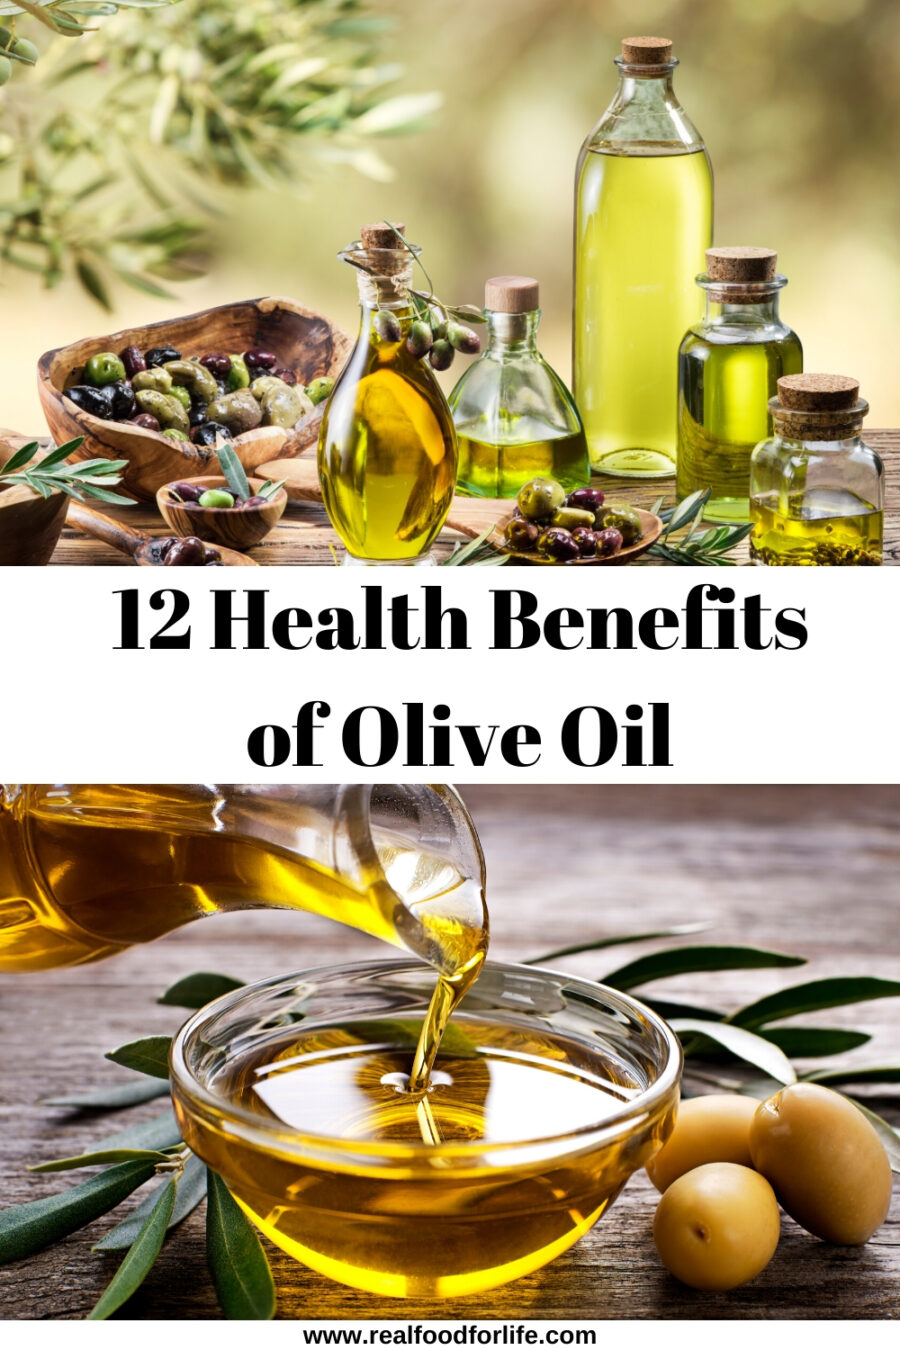 12 health benefits of olive oil with infographic - real food